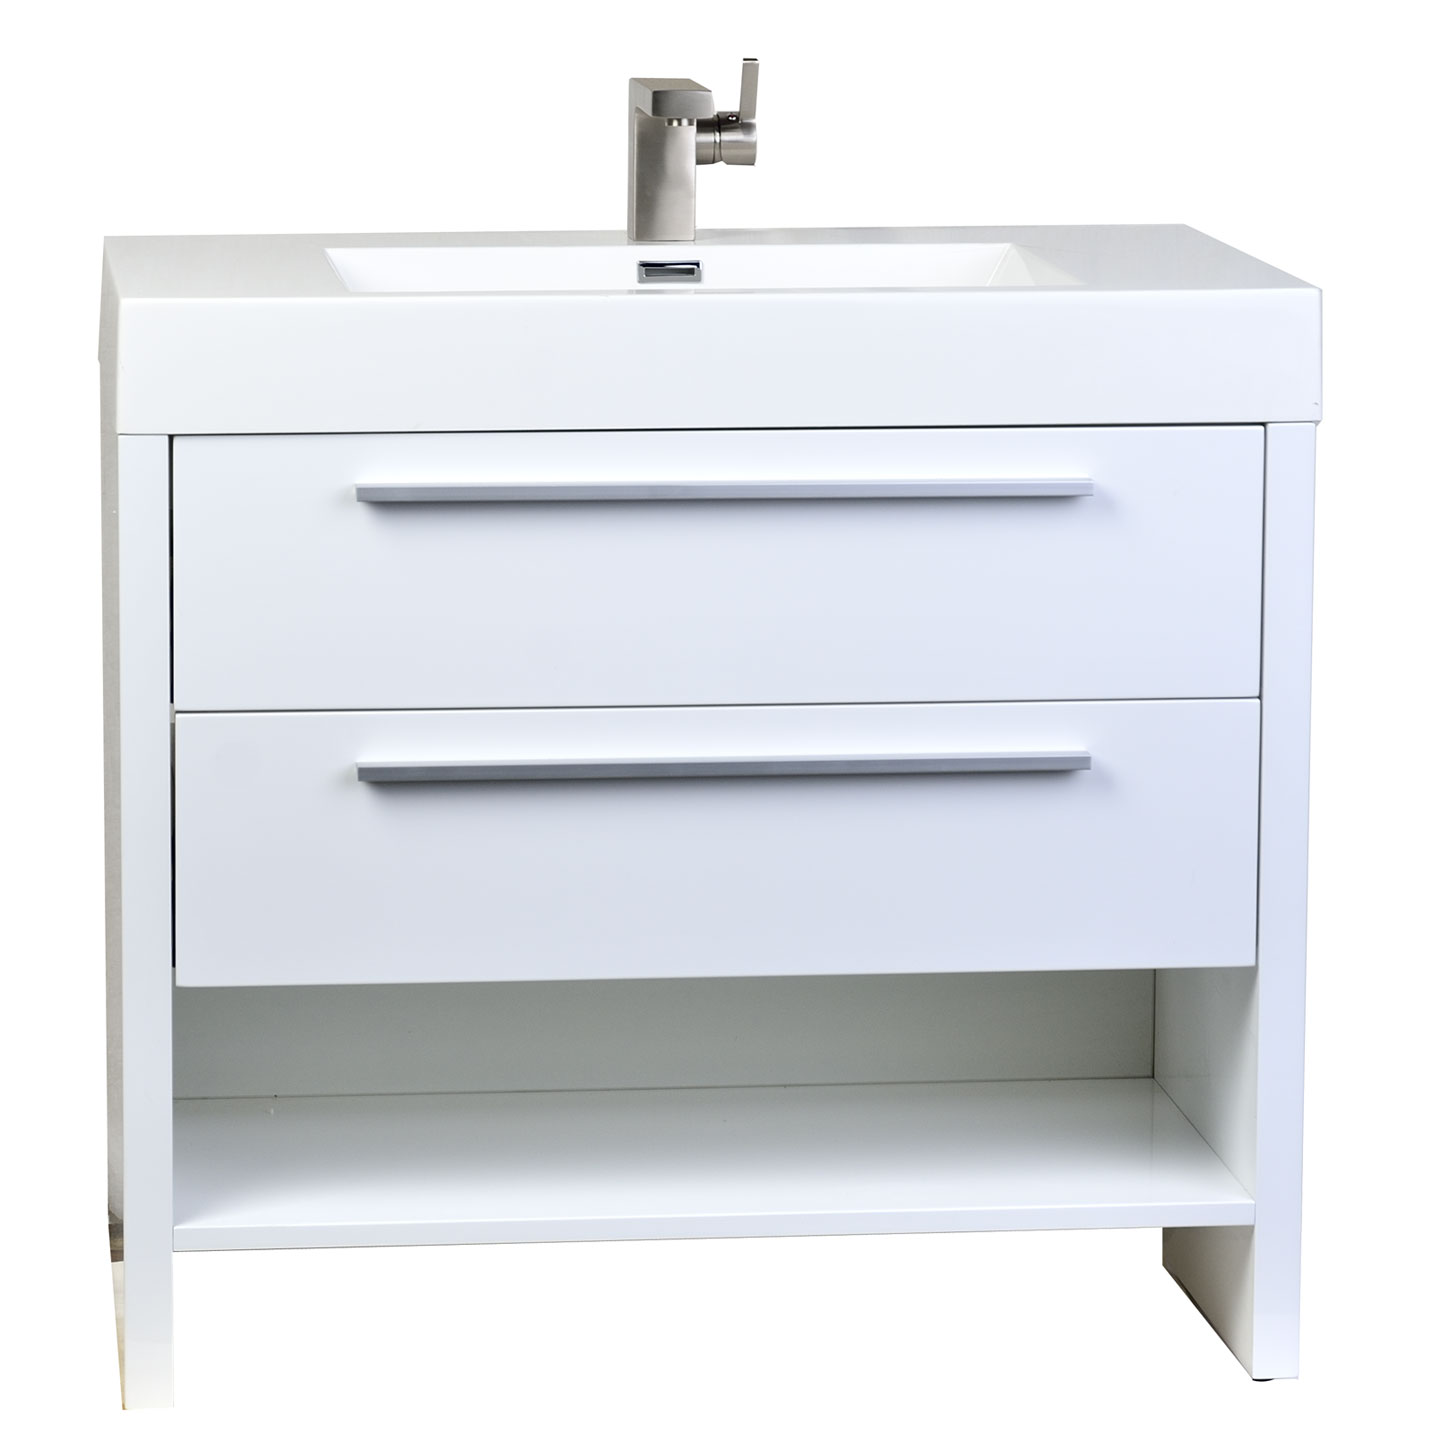 "Mula 35.5"" Modern Bathroom Vanity High Gloss White RS-L900-HGW"